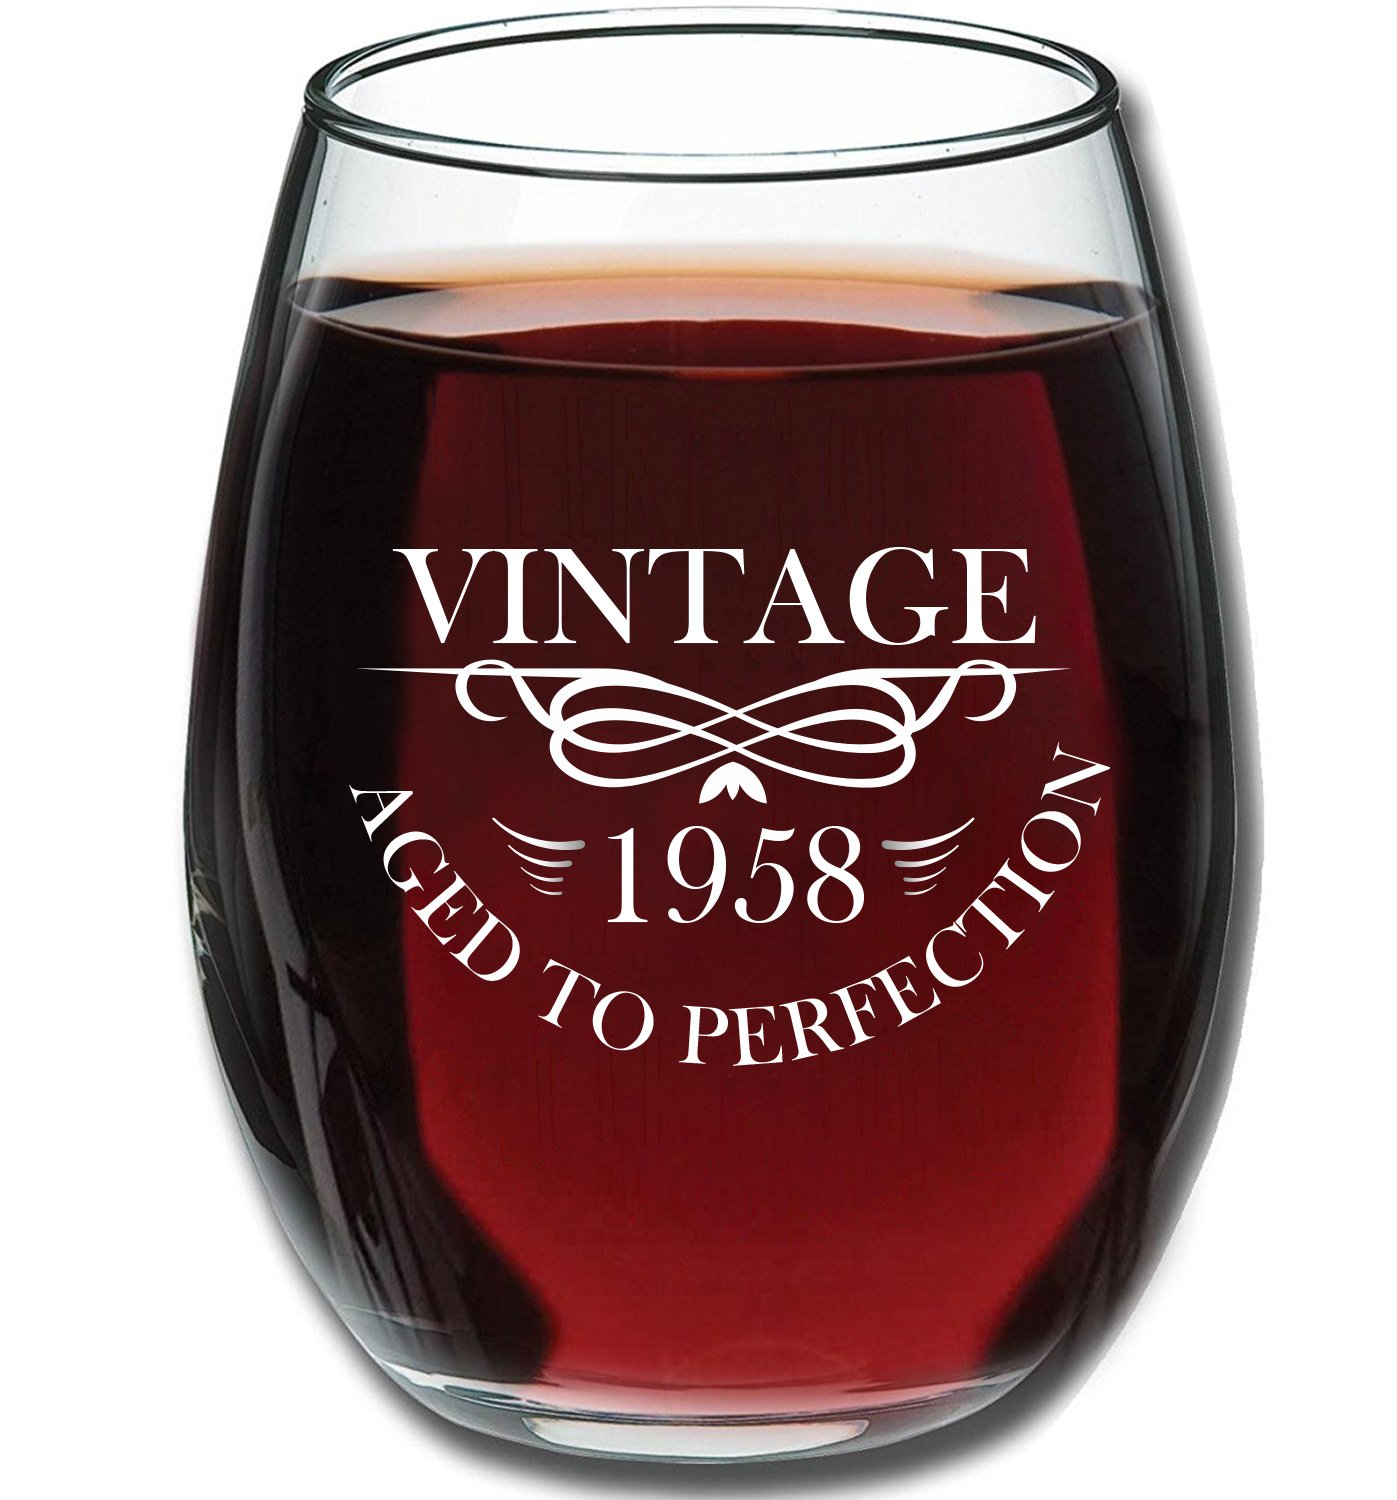 1958 60th Birthday 15oz Stemless Wine Glass for Women and Men - Vintage Aged To Perfection - 60th Wedding Anniversary Gift Idea for Him, Her, Parents - 60 Year Old Presents for Mom, Dad, Husband, Wife by Gelid (Image #1)